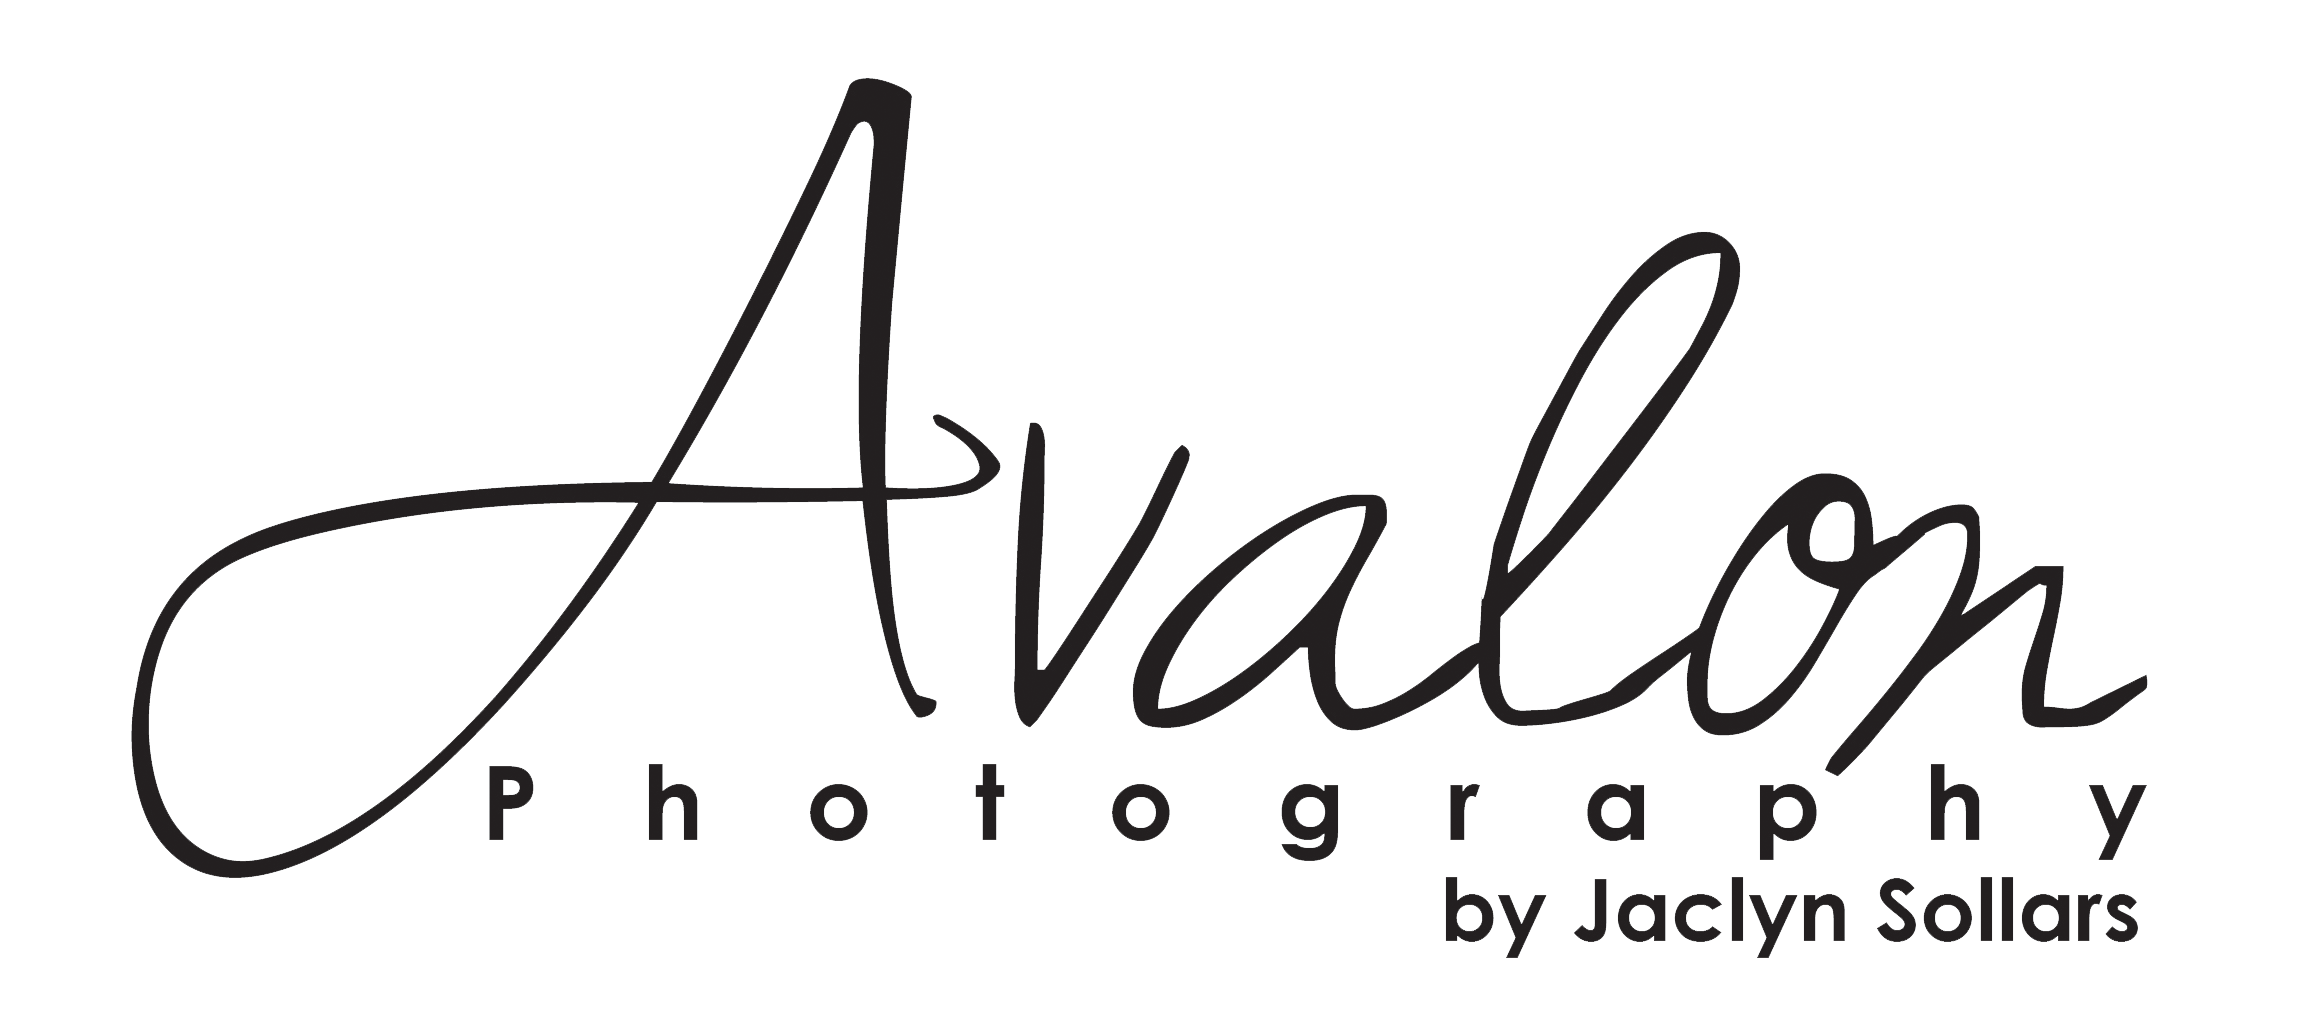 Avalon Photography by Jaclyn Sollars